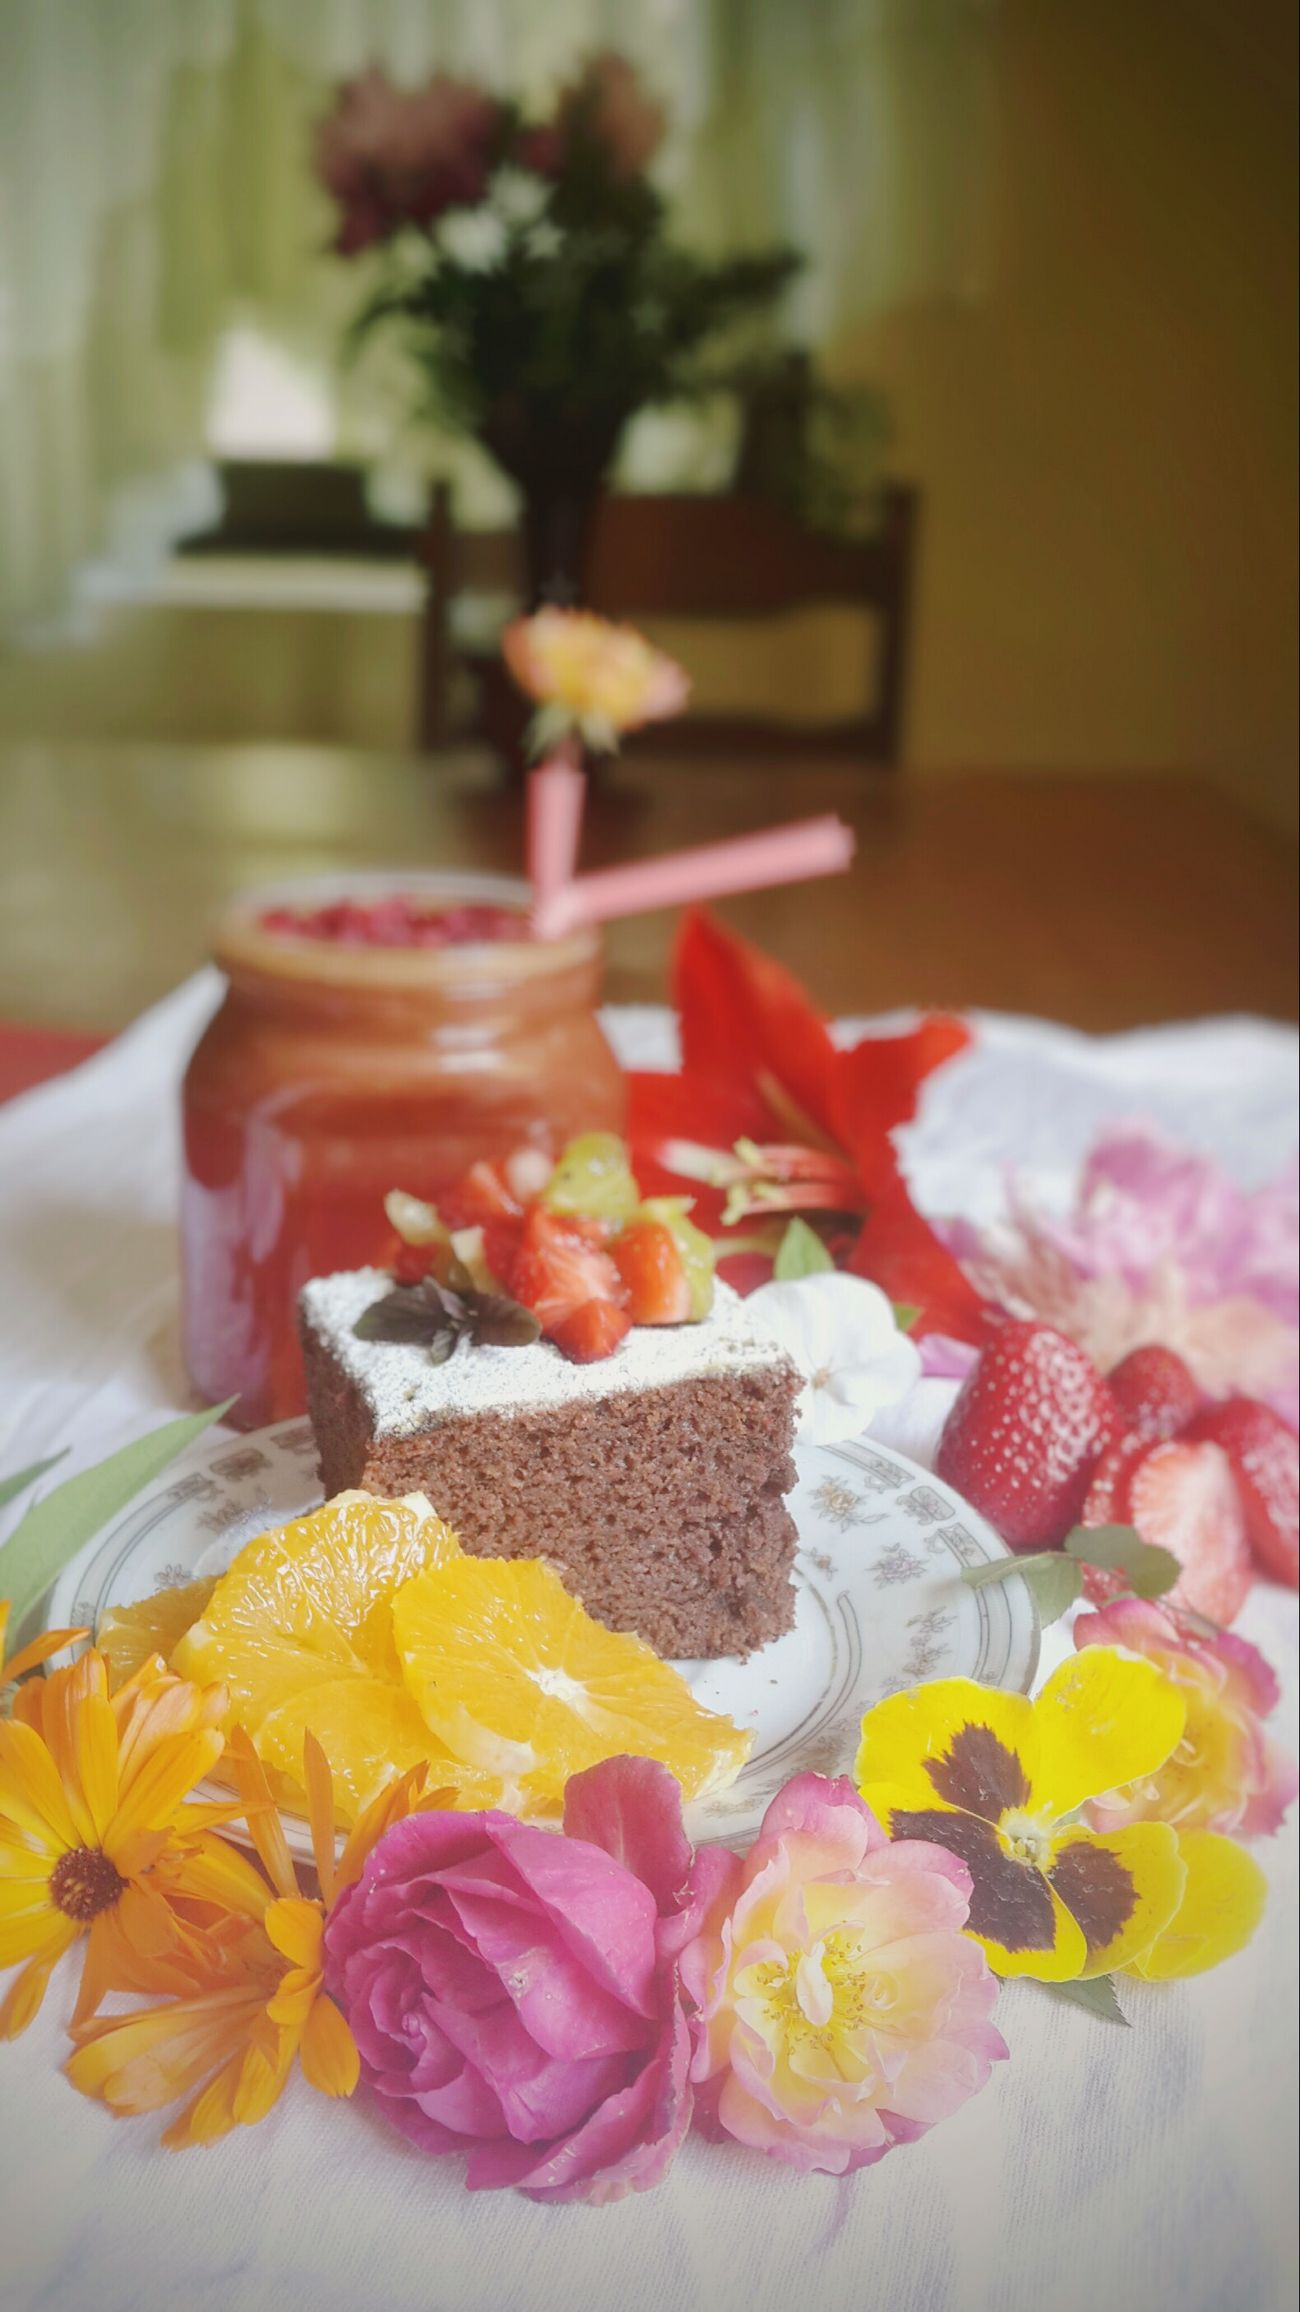 Taking Photos Check This Out Relaxing Enjoying Life Mothers Day Hi! Homemade Art Decor Foodphotography For Mom Strawberry Brownie Smoothie Delicious Raspberry Nom Nom Nom Sweet Beautiful Roses🌹 Love Home Flowers Healthy Breakfast